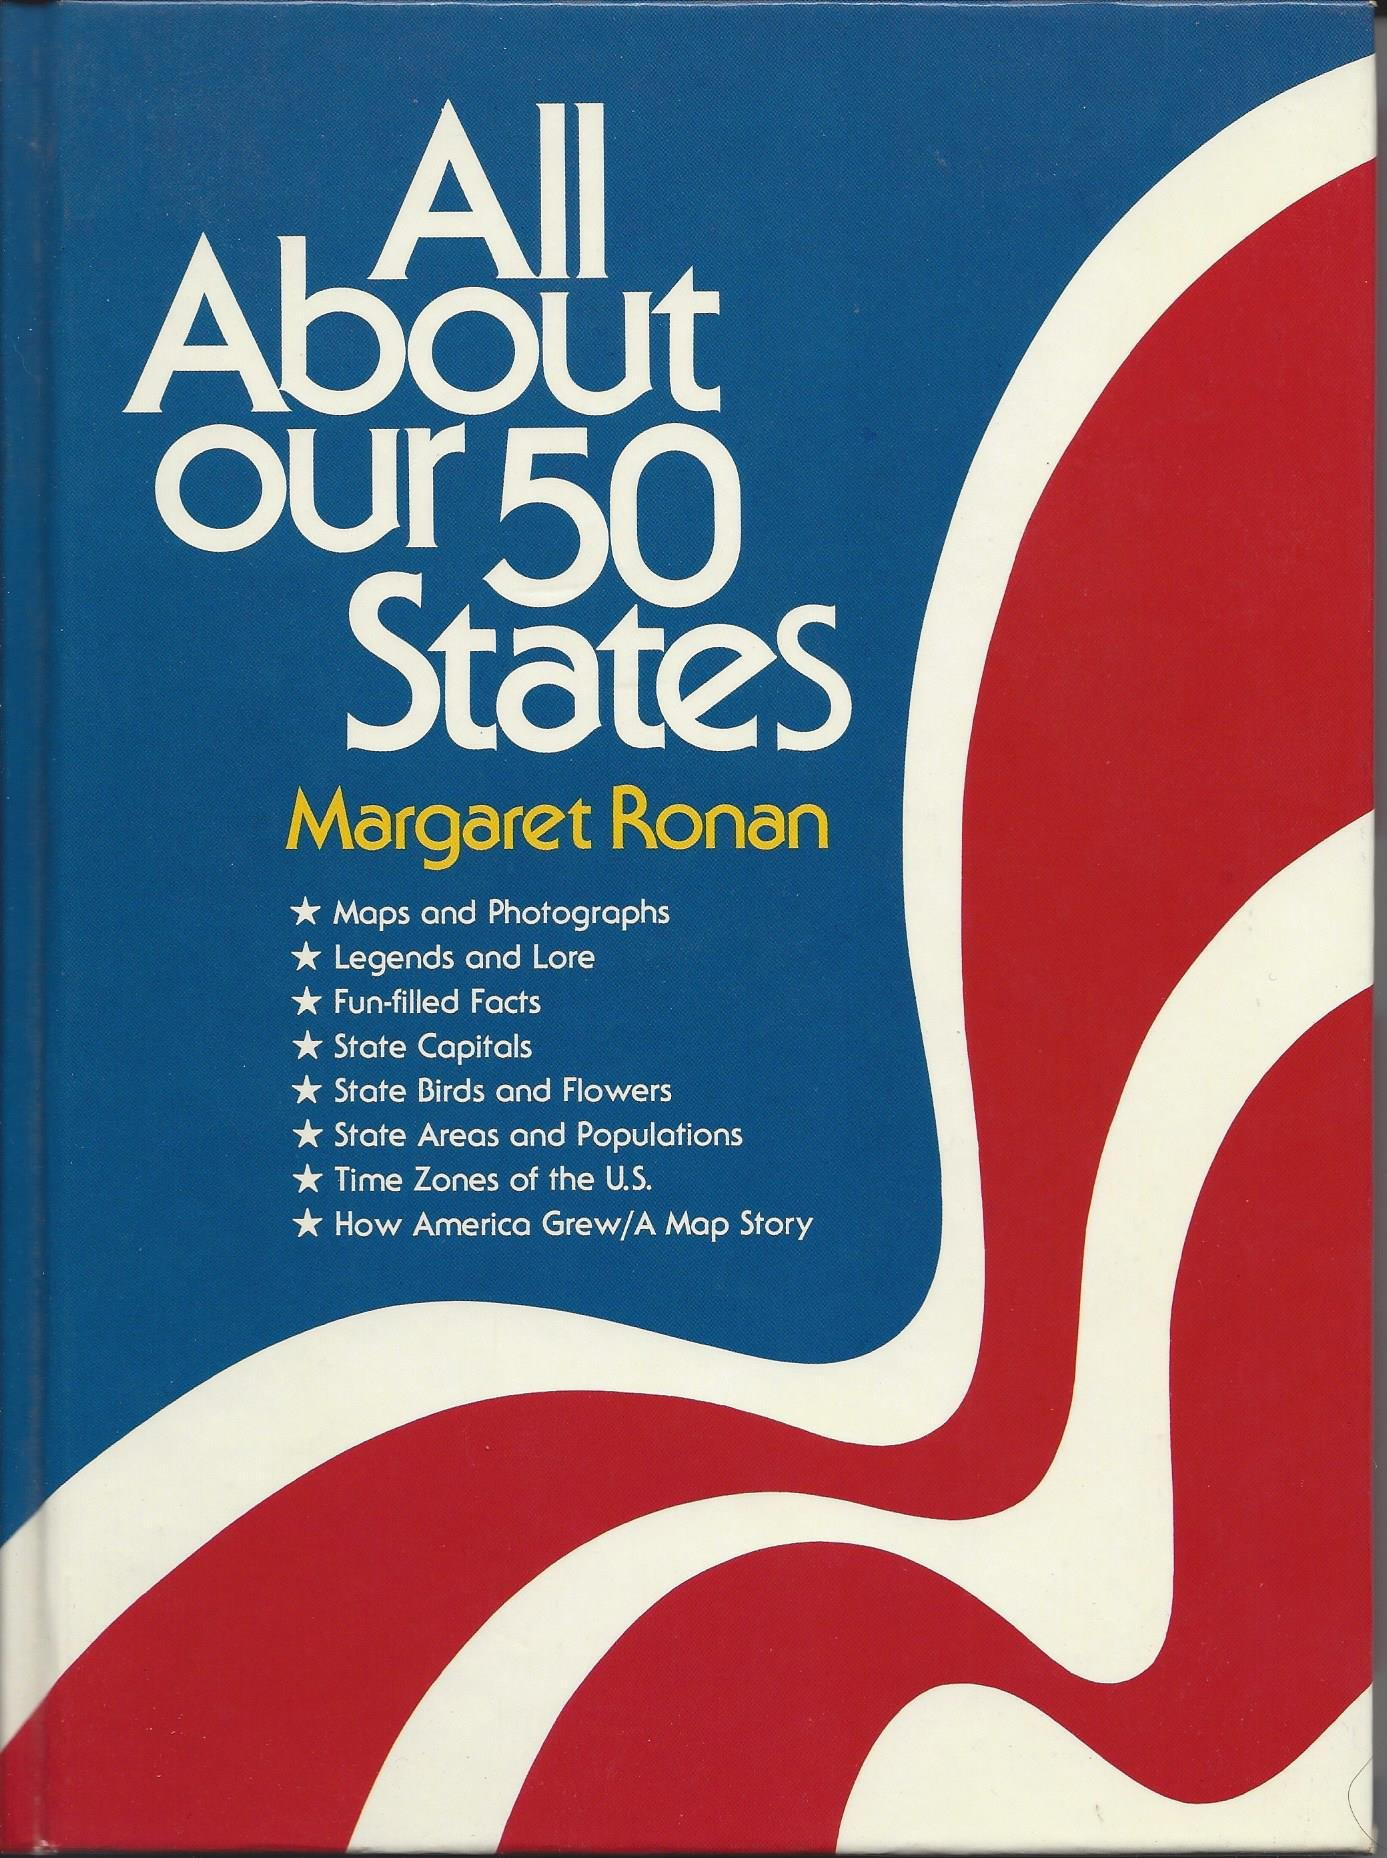 All About Our 50 States: Margaret Ronan: 9780394802442 ... on show time zones, state to state time zones, standard time zones, north america time zones, fall time zones, indiana time zones, american time zones, utc time zones, eastern time zones, tennessee time zones, different time zones, europe time zones, nebraska time zones, washington time zones, na time zones, brazil time zones, four time zones, christmas time zones, all us time zones, social studies time zones,